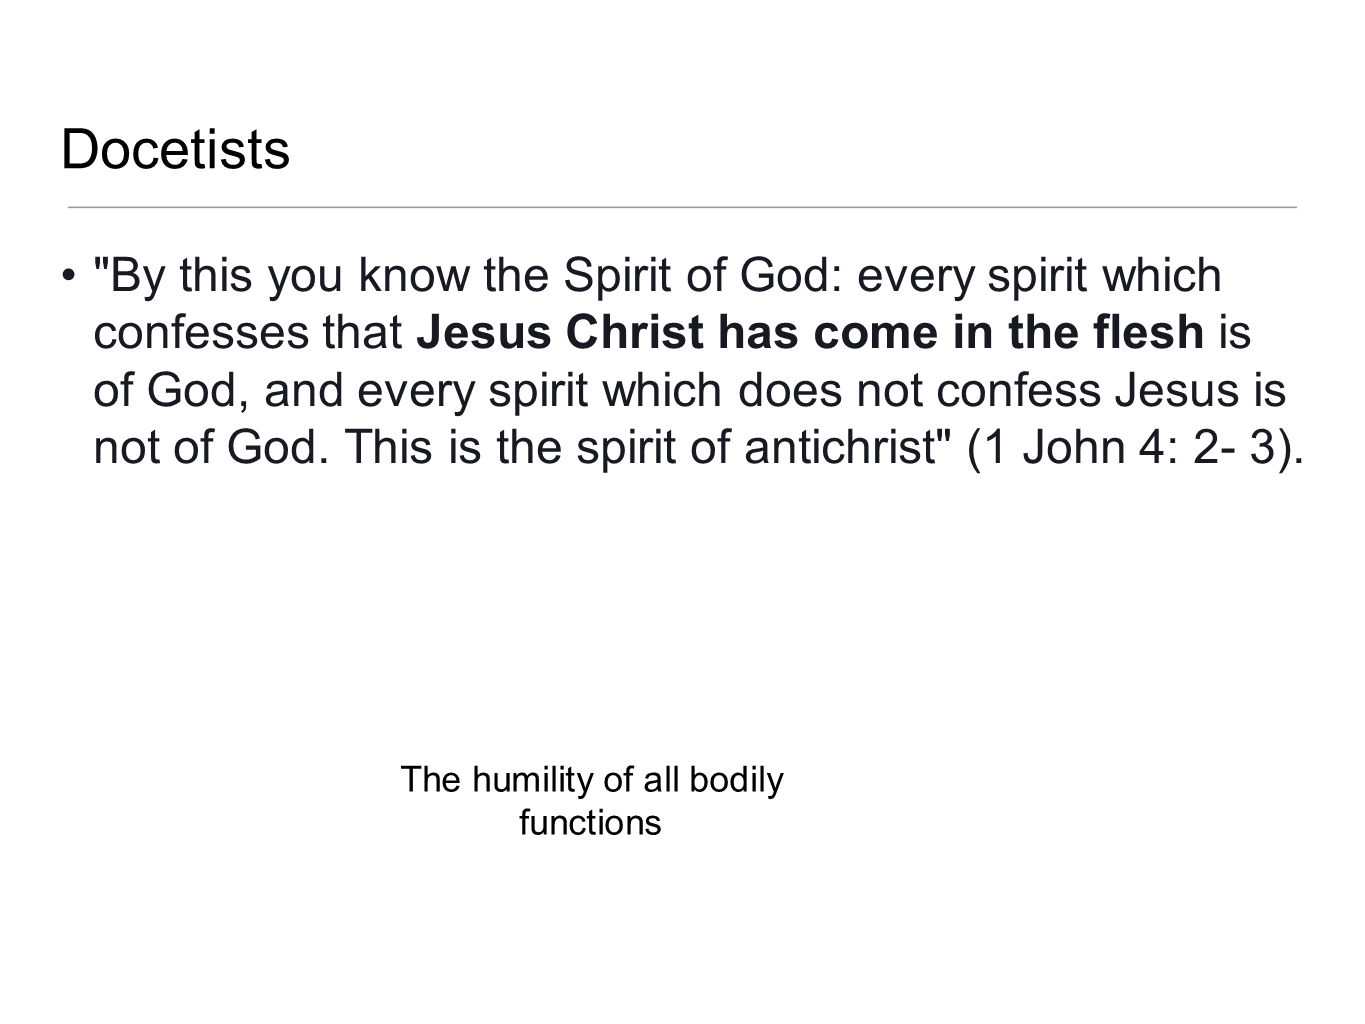 The humility of all bodily functions